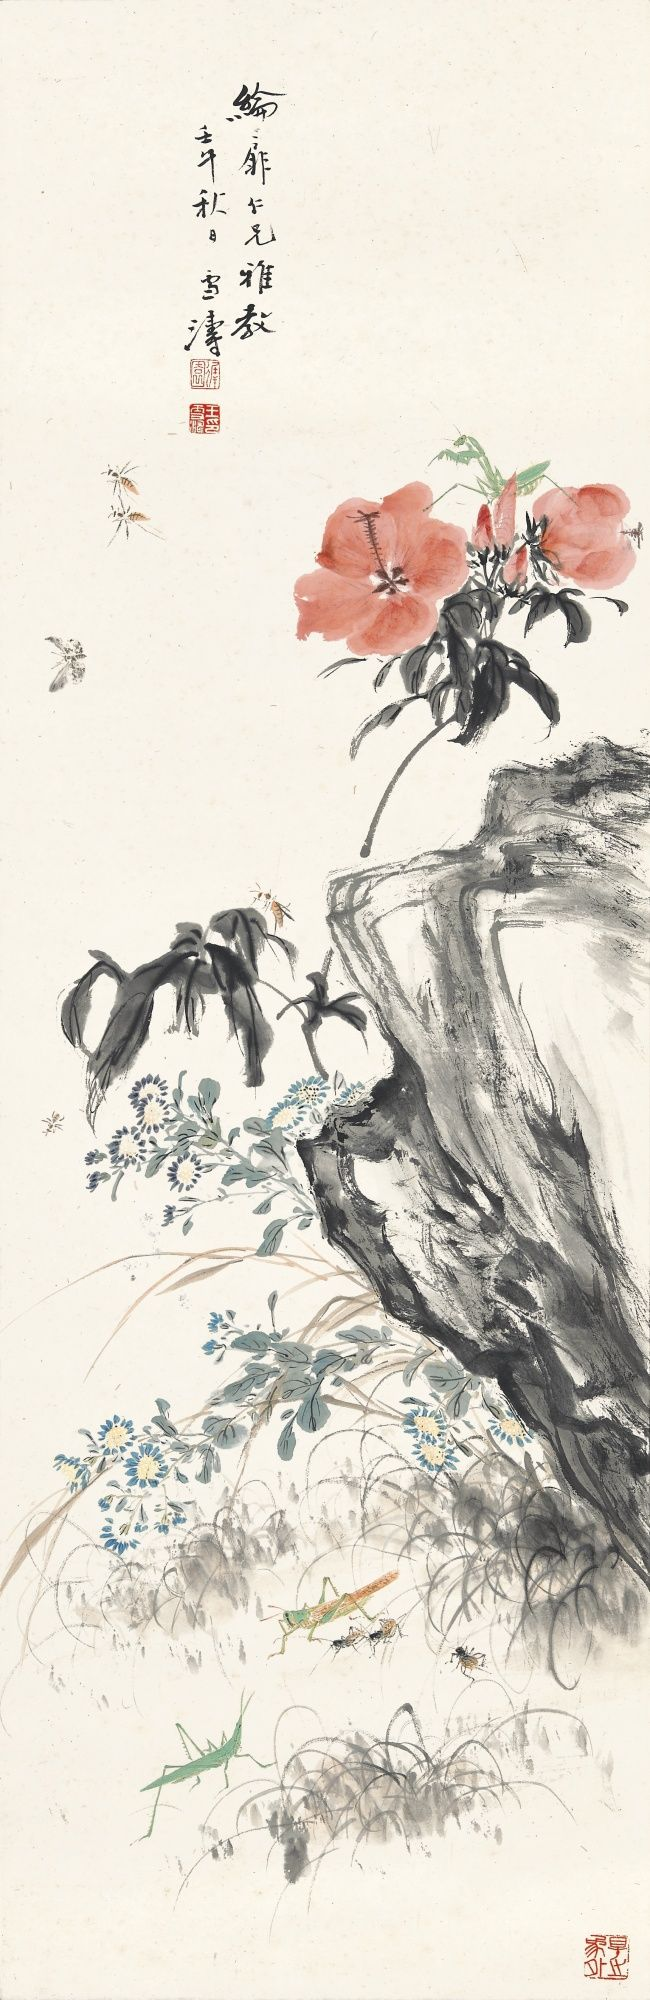 Wang Xuetao (1903-1992) HIBISCUS AND INSECTS signed XUETAO, dated 1942, with a dedication, and three seals of the artist ink and color on paper, framed 101.5 by 33 cm. 40 by 13 in. 王雪濤 朱槿草蟲 設色紙本 鏡框 一九四二年作 款識: 綸扉仁兄雅教。壬午秋日。雪濤。  鈐印:「遲園」、「王雪濤印」、「得之象外」。   101.5 by 33 cm. 40 by 13 in.